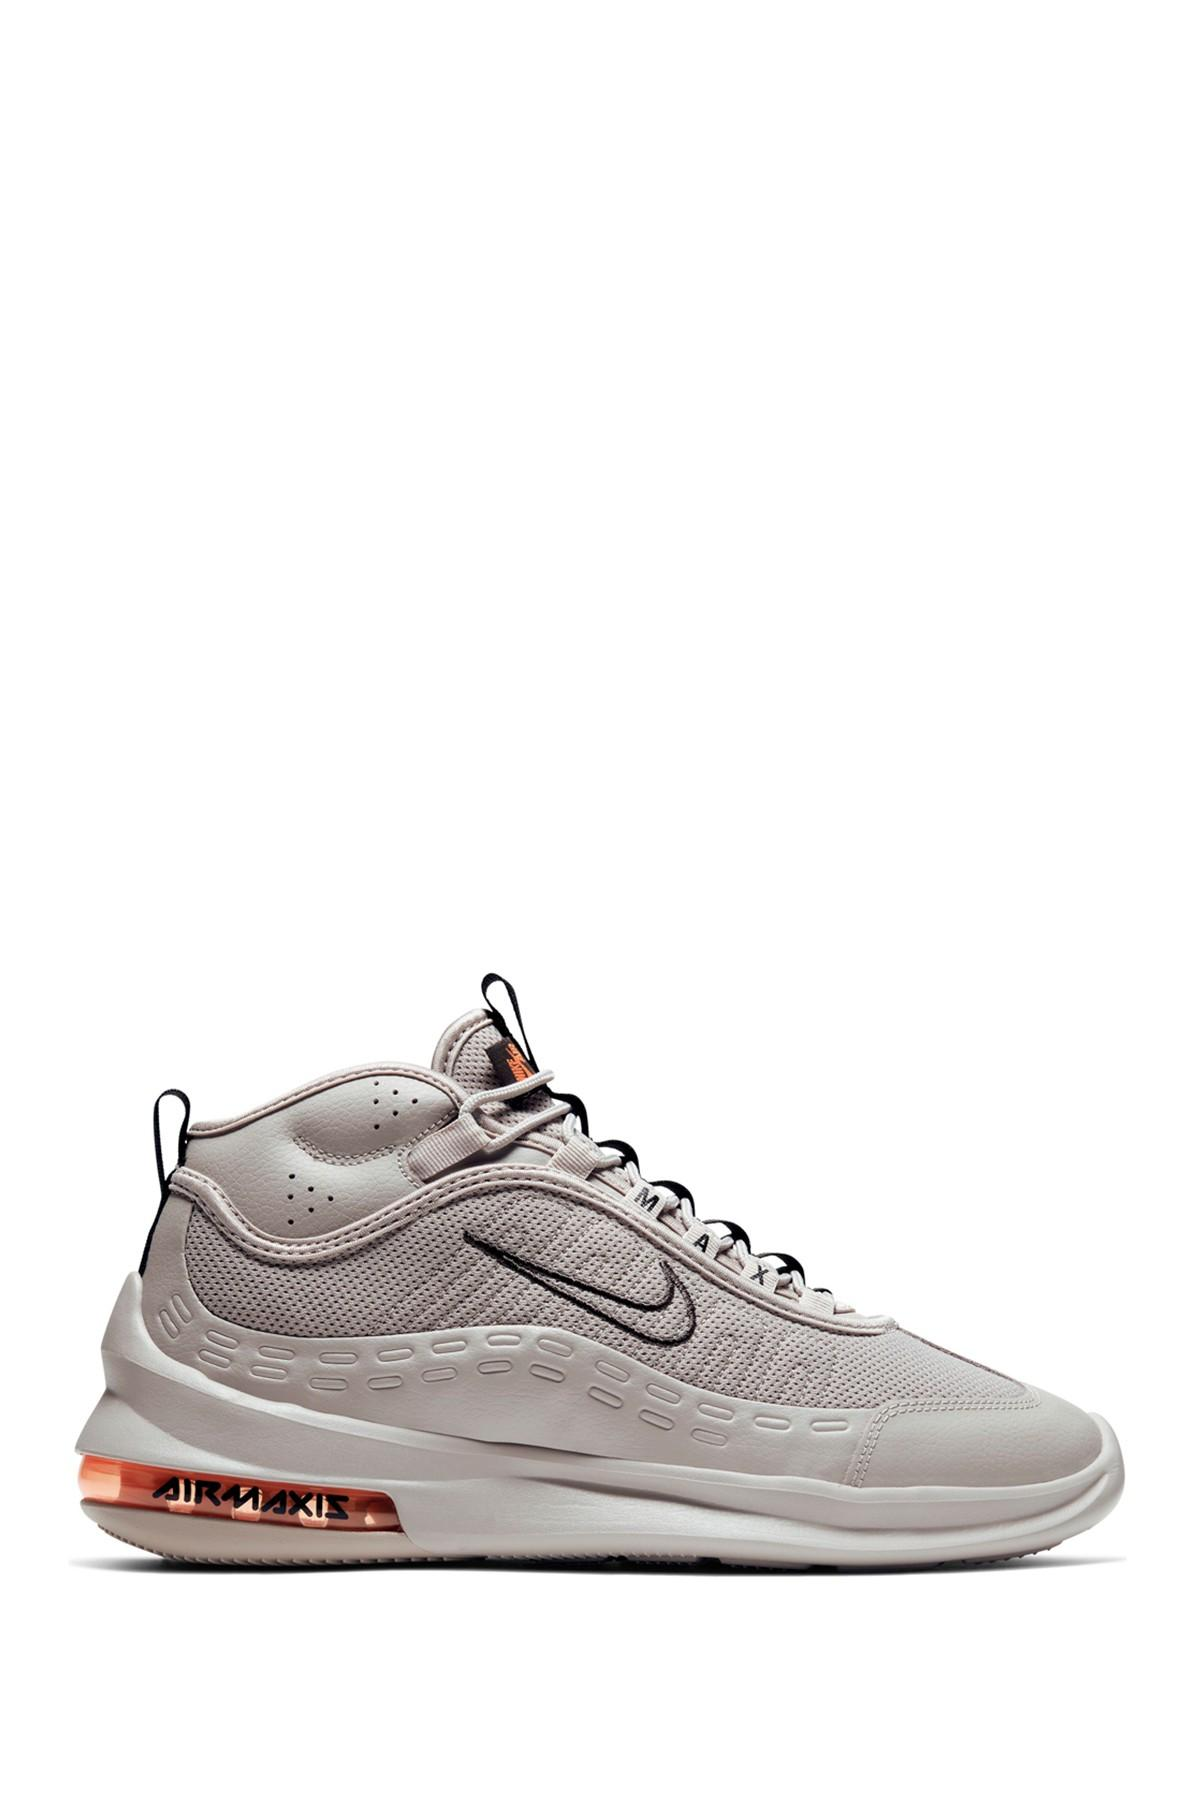 Nike Air Max Axis Mid Sneaker for Men - Lyst